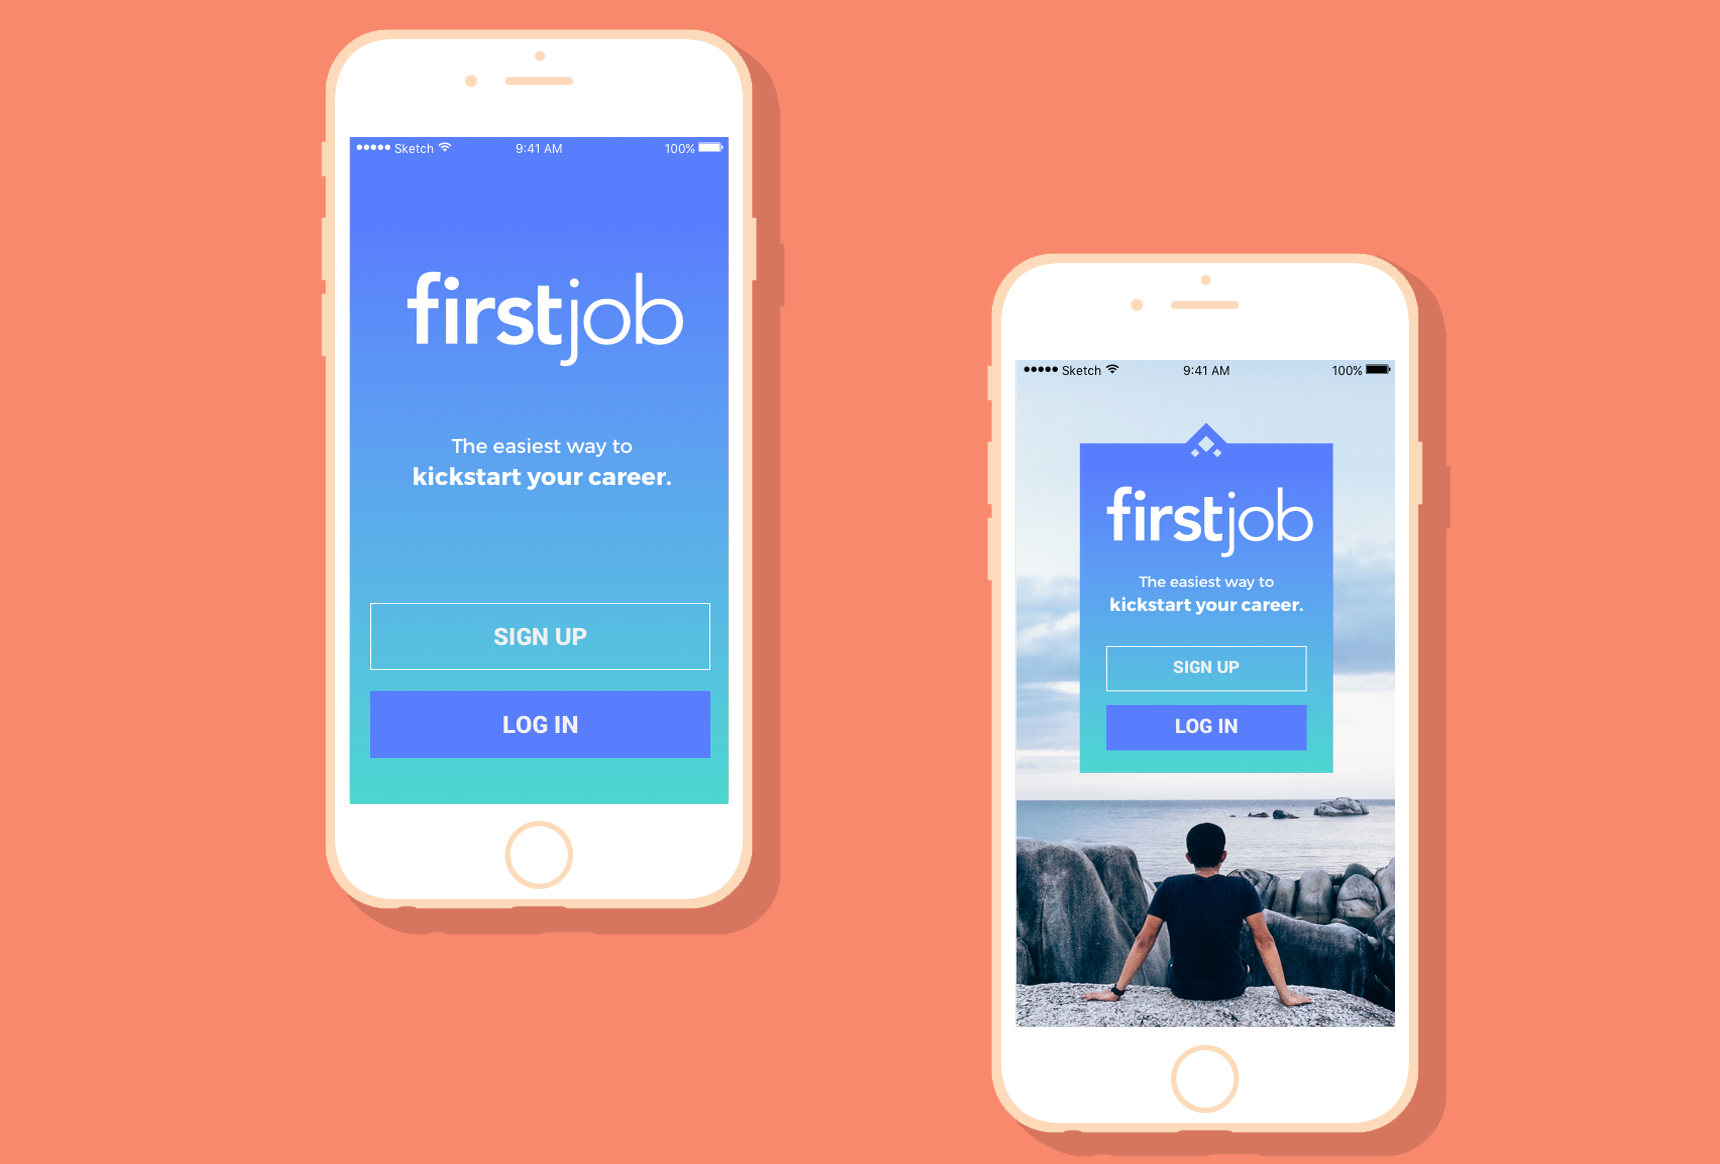 firstjob app visual design.png